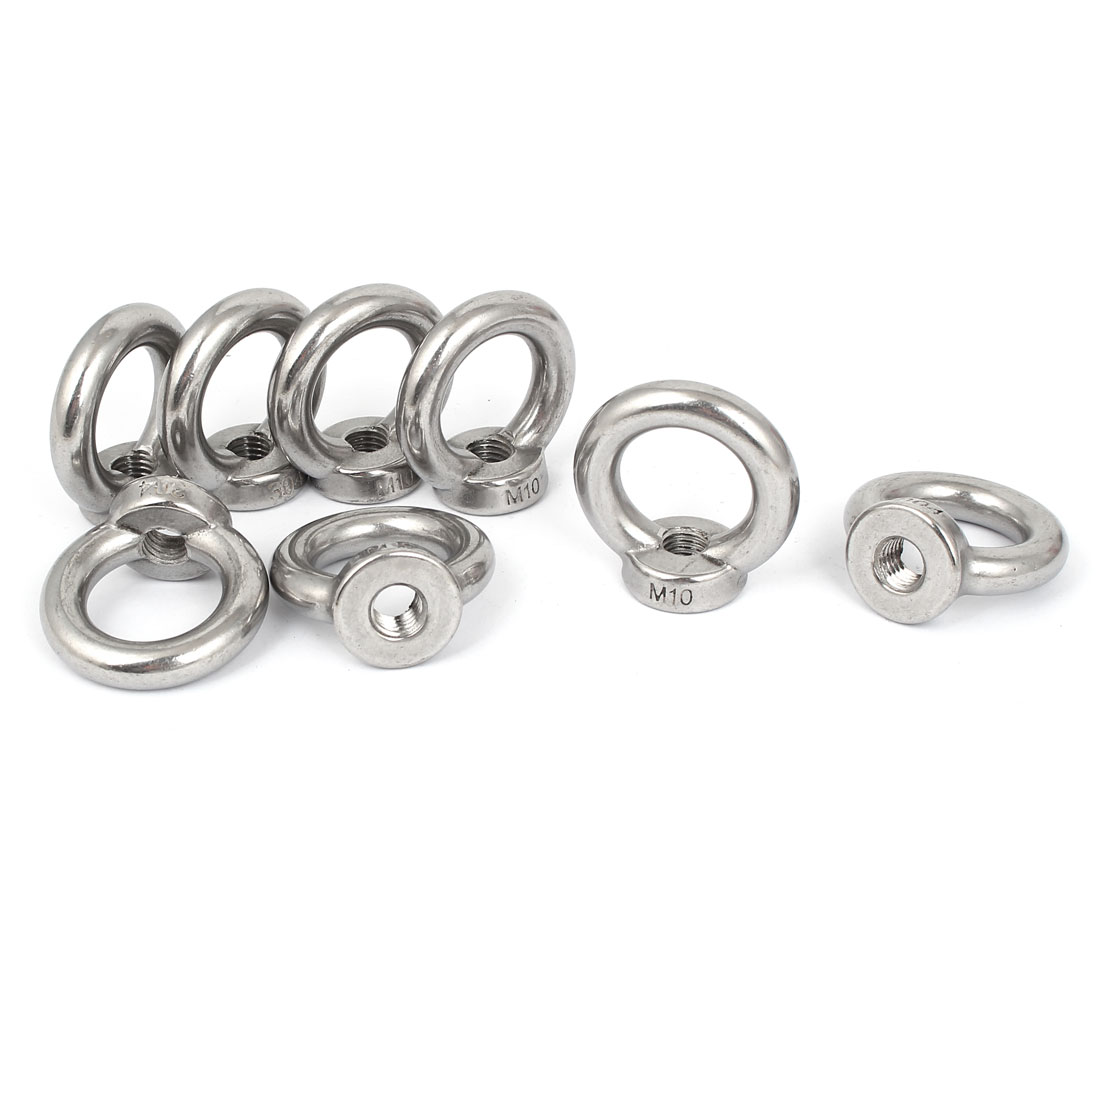 M10 Female Thread 304 Stainless Steel Lifting Eye Nuts Ring 8 Pcs